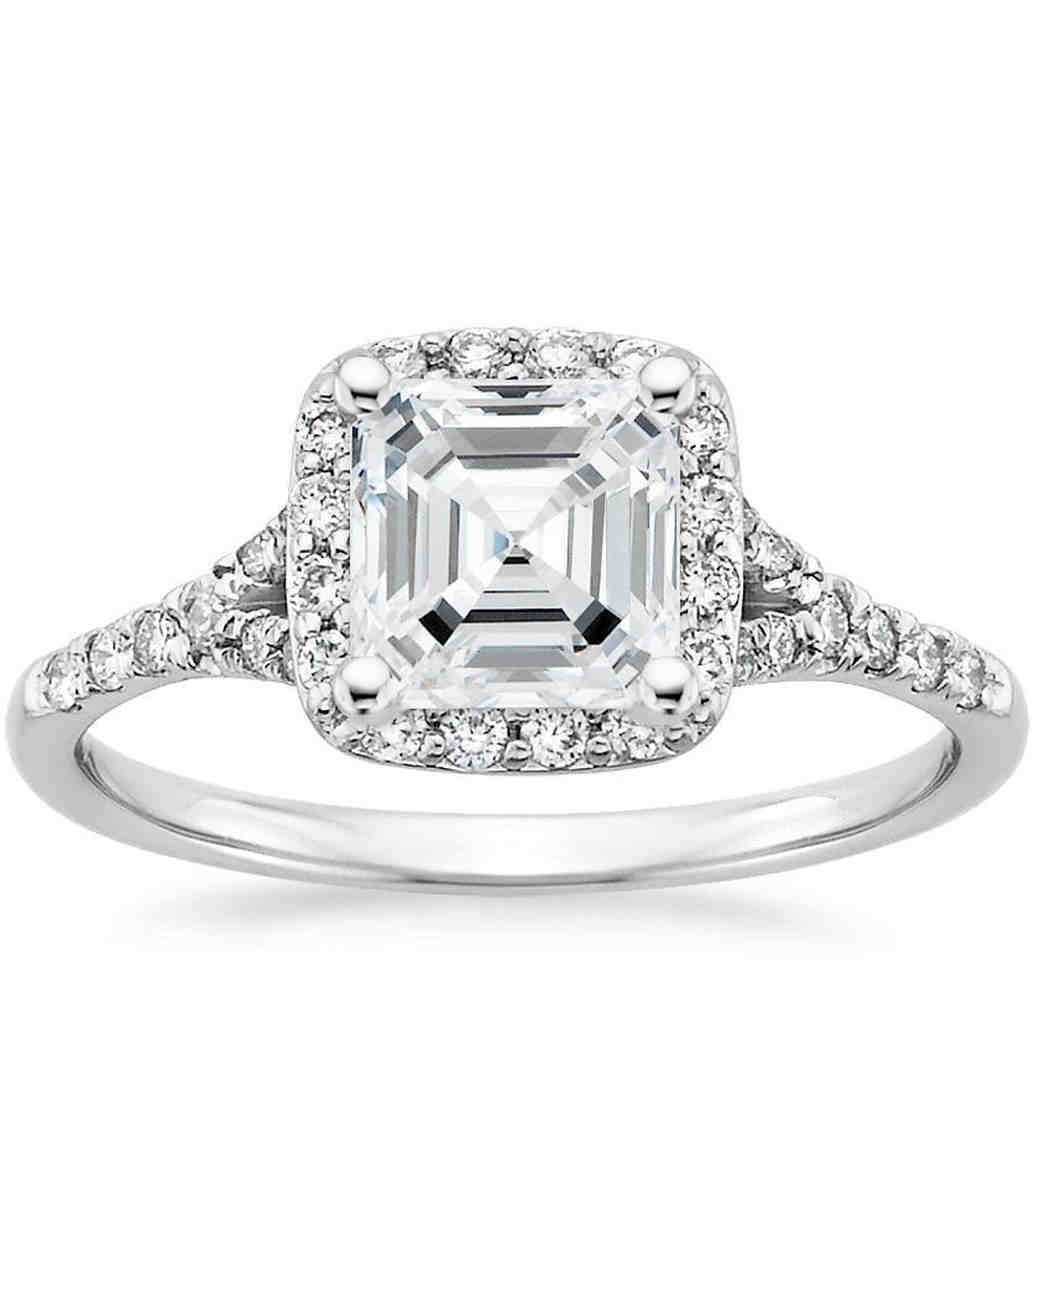 Image result for asscher cut diamond rings